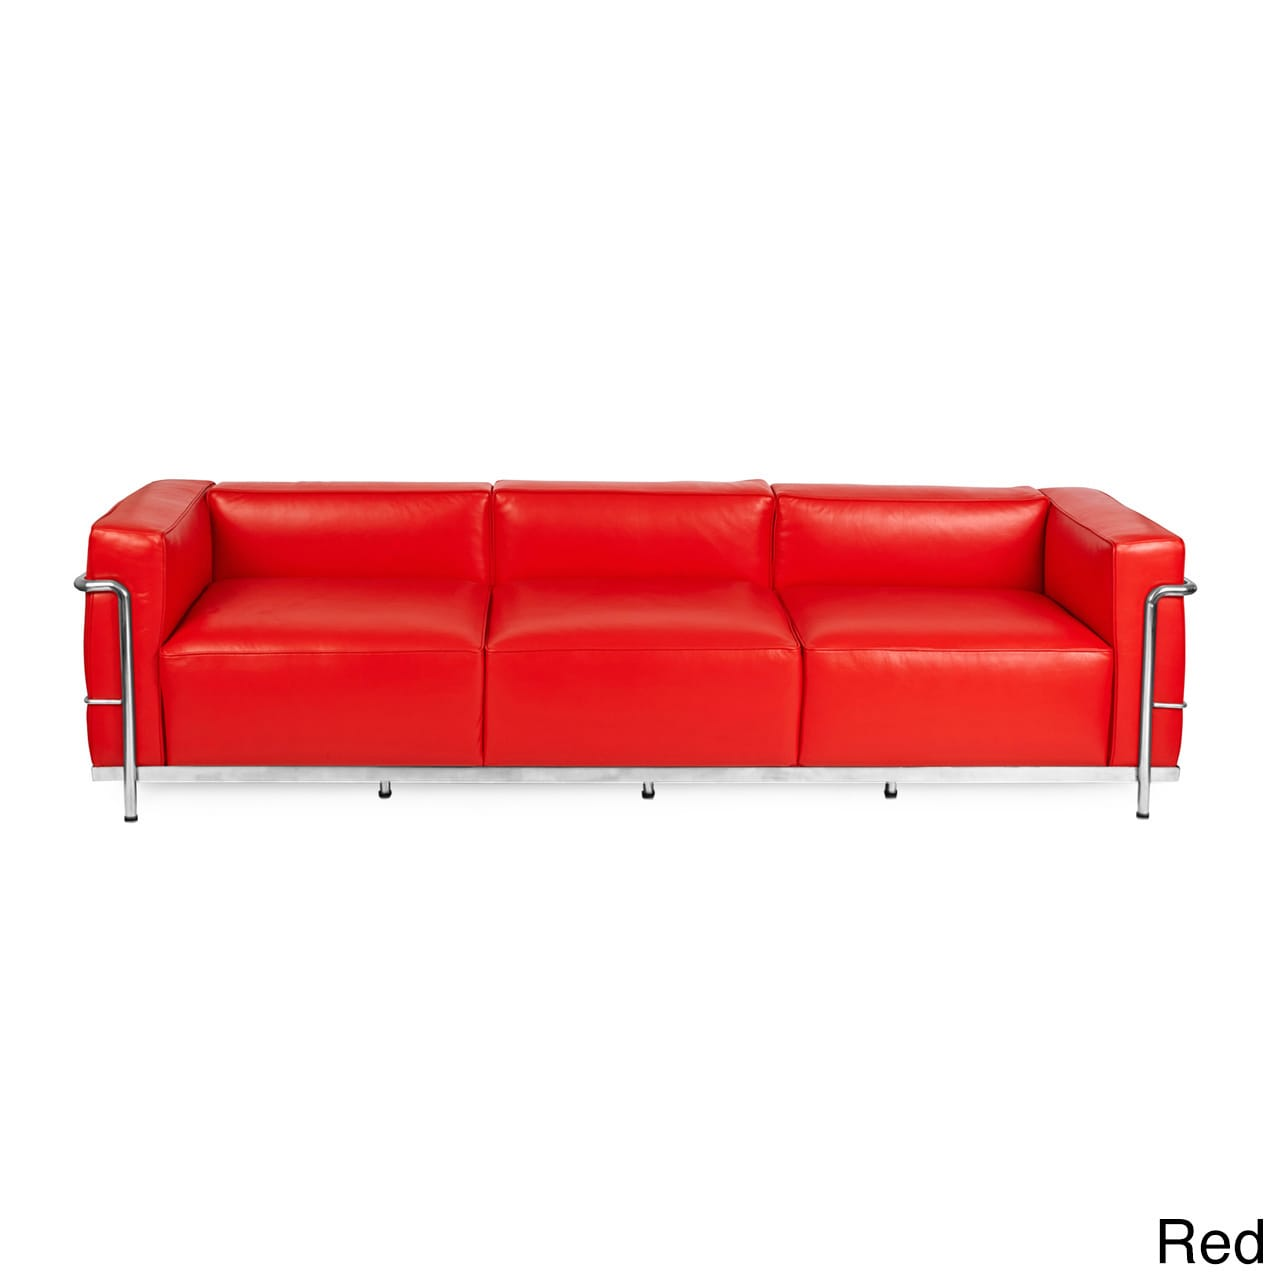 italsofa leather swivel chair sofa store glasgow fort red bed sofas couches you ll love ...